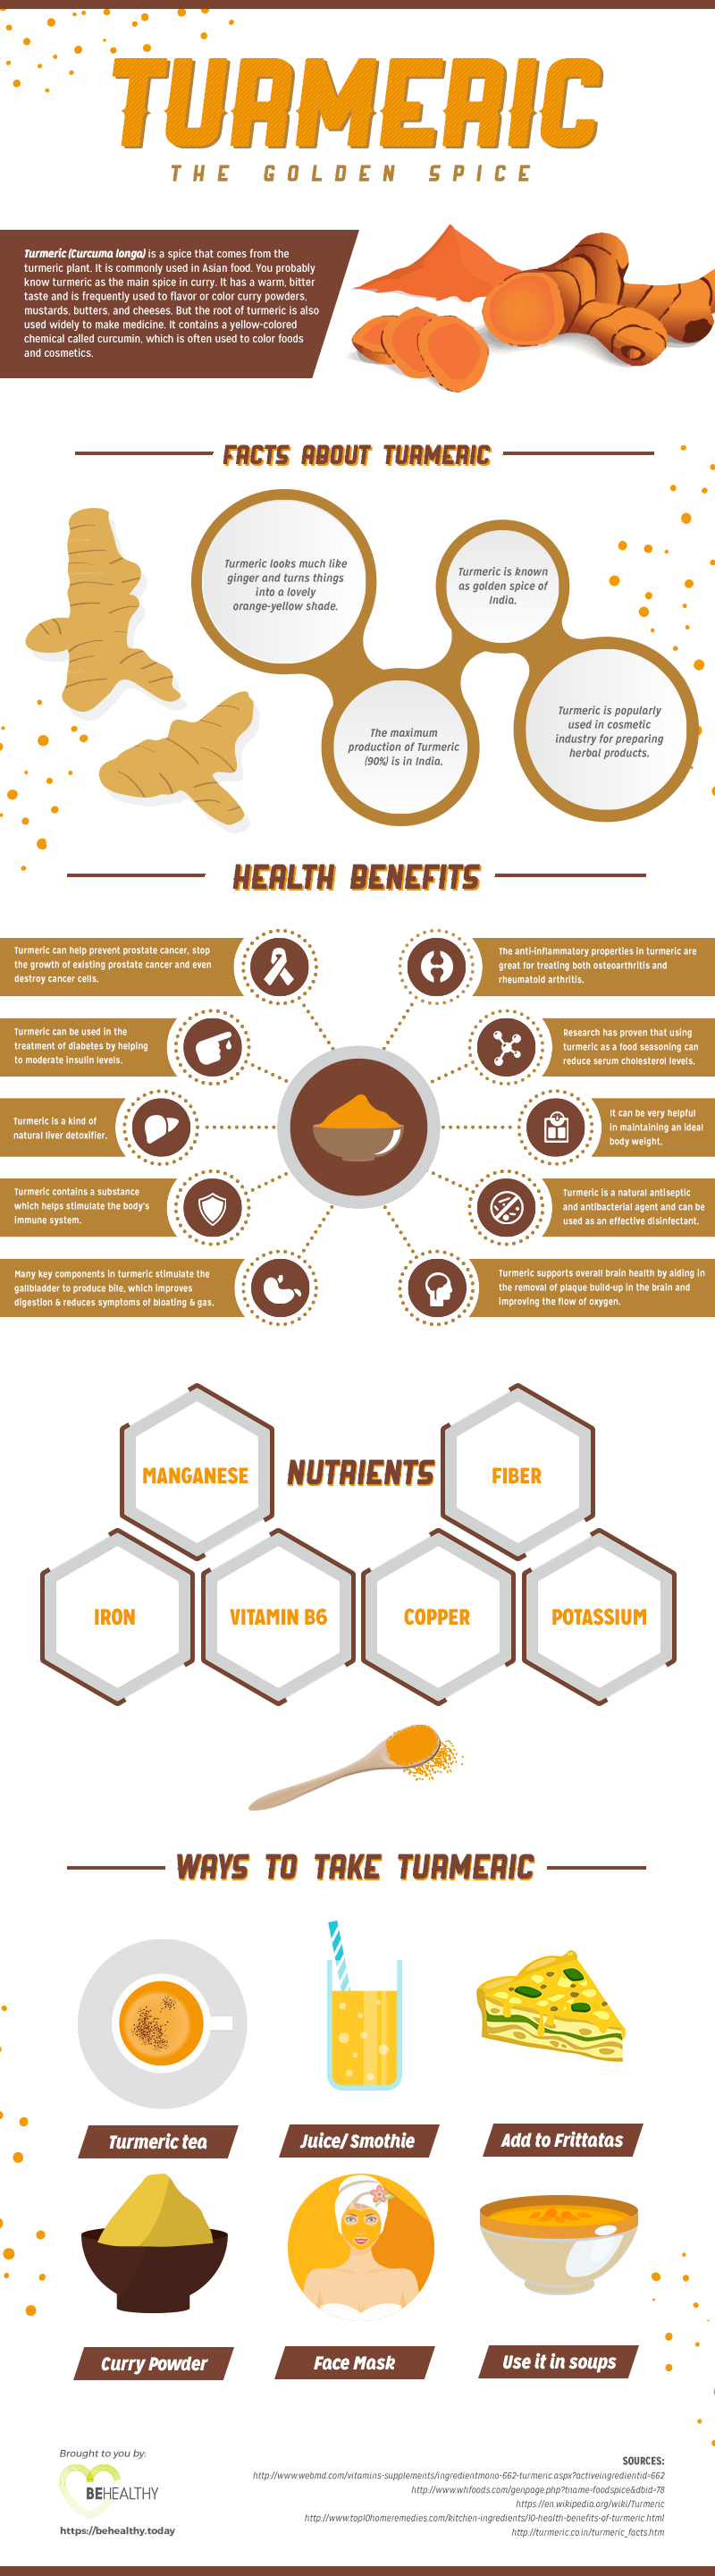 Turmeric Benefits - Infographic